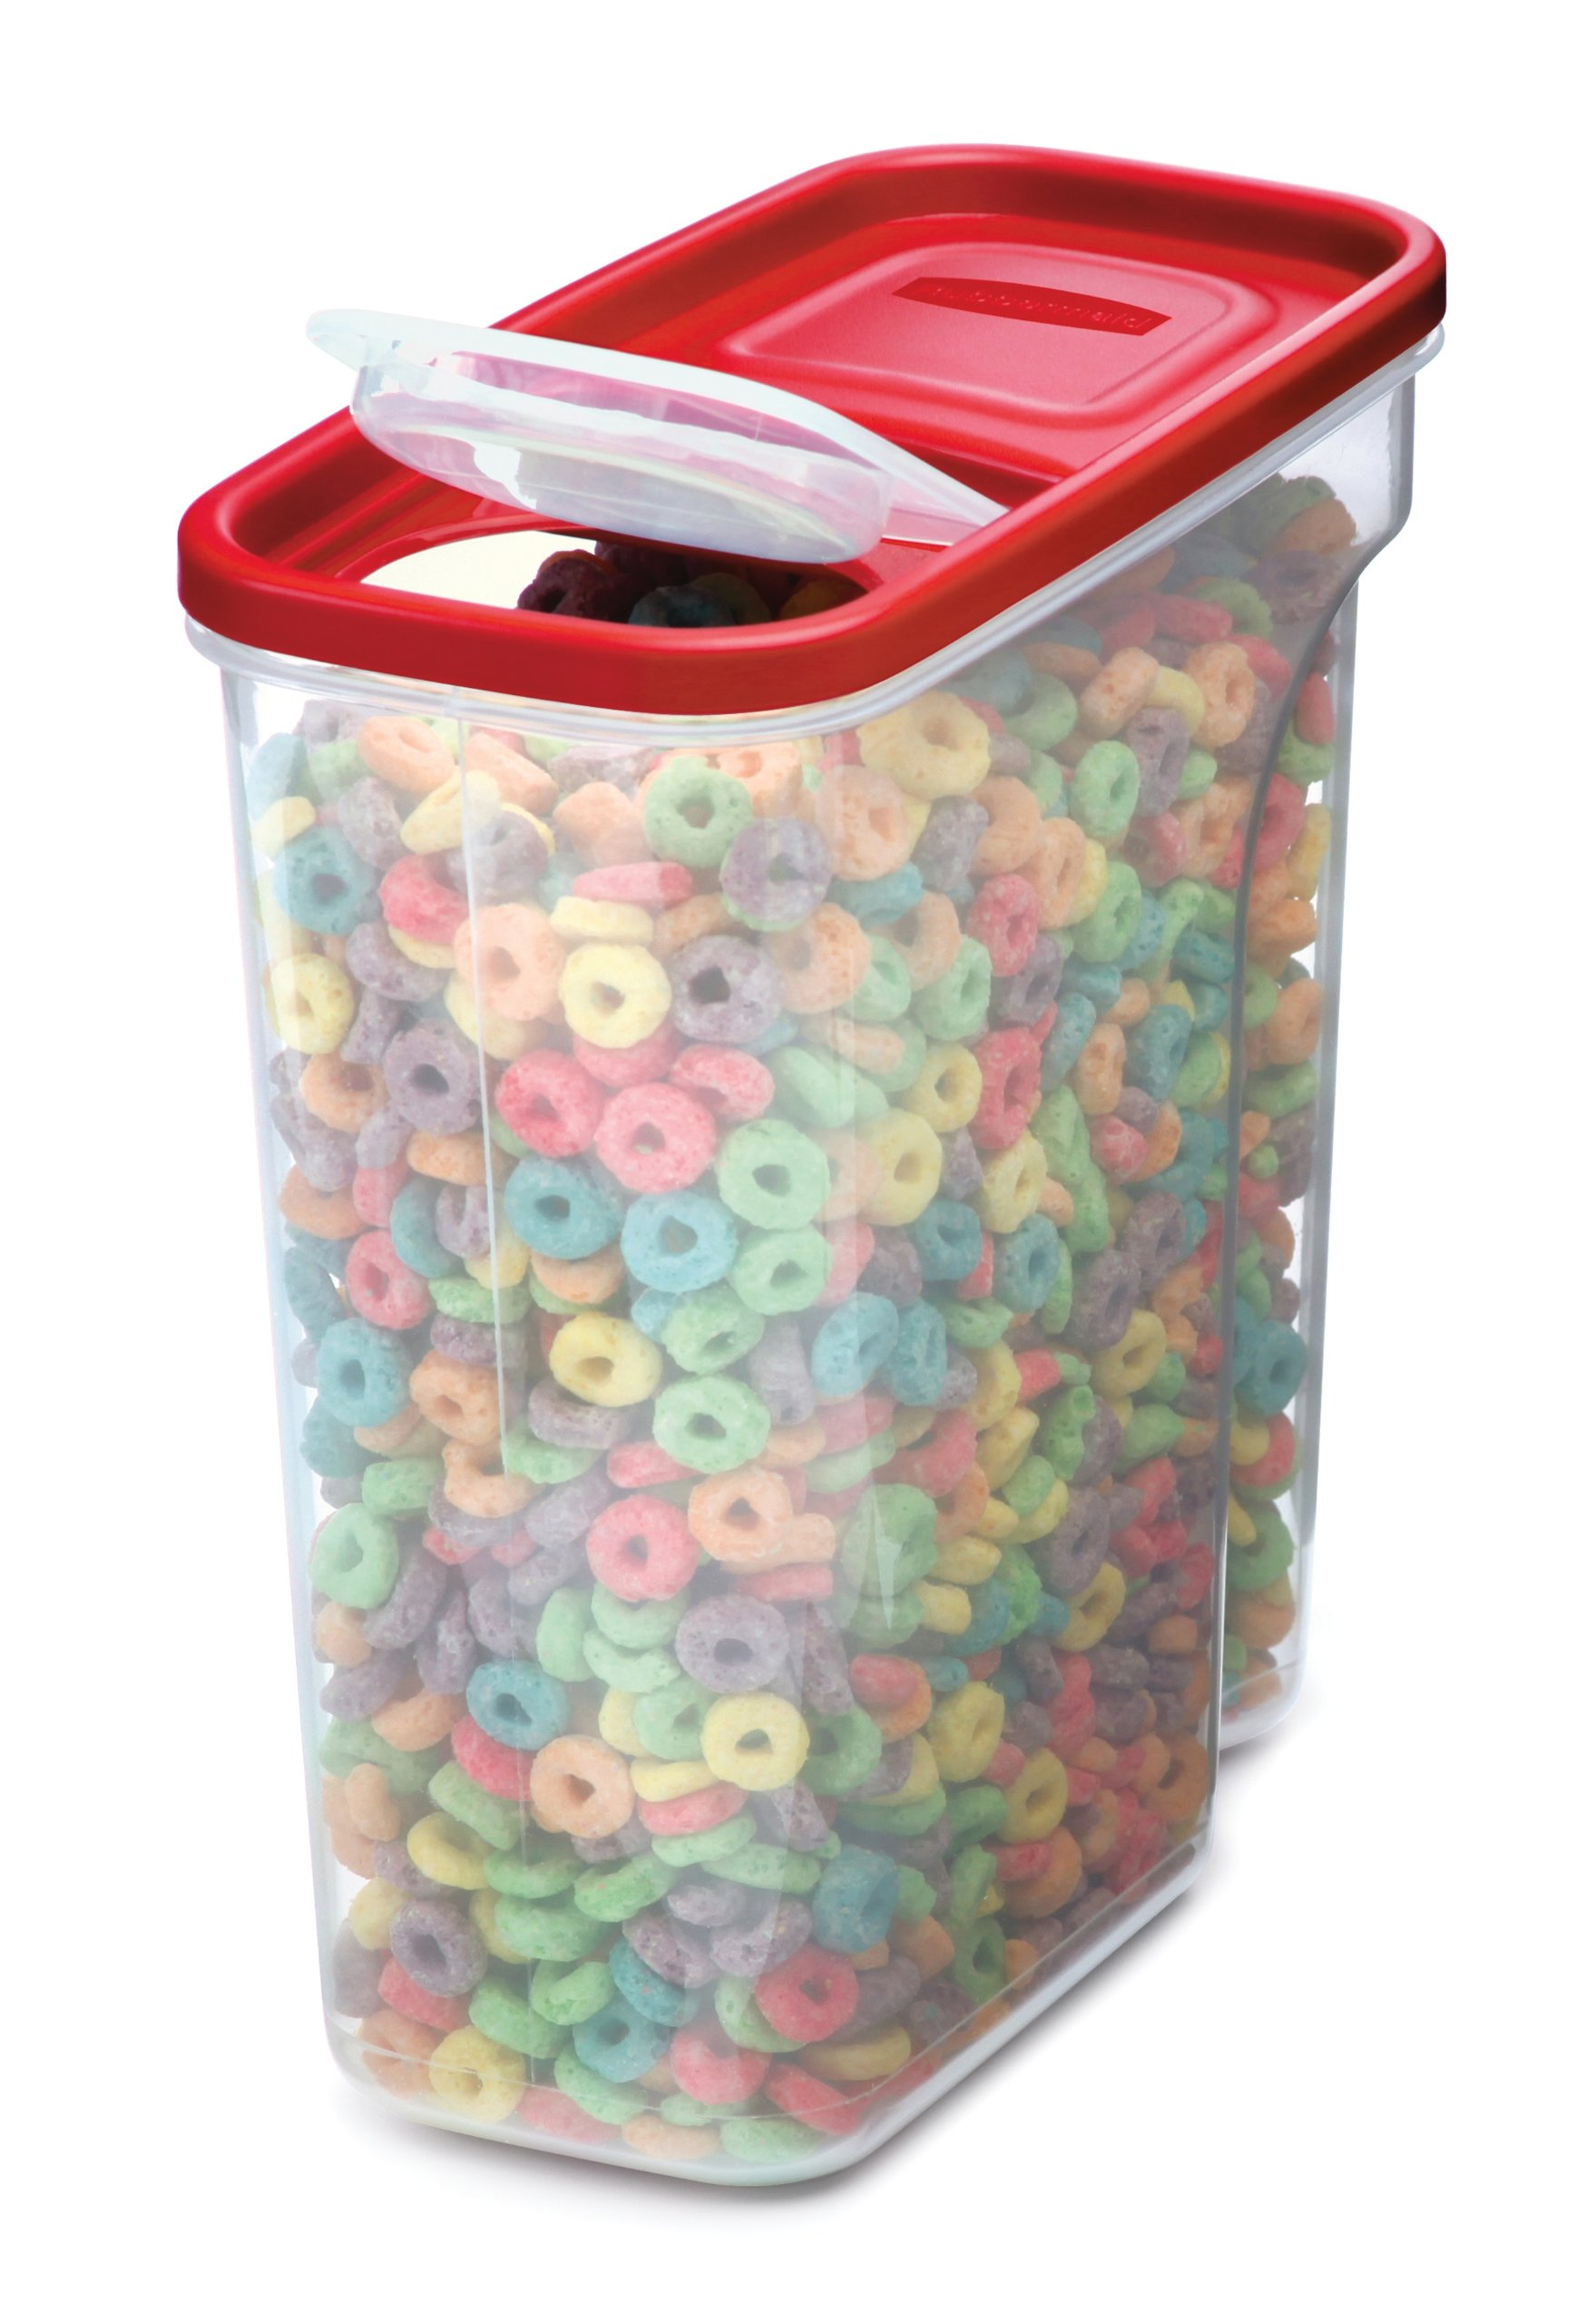 rubbermaid modular cereal food keeper box storage lid